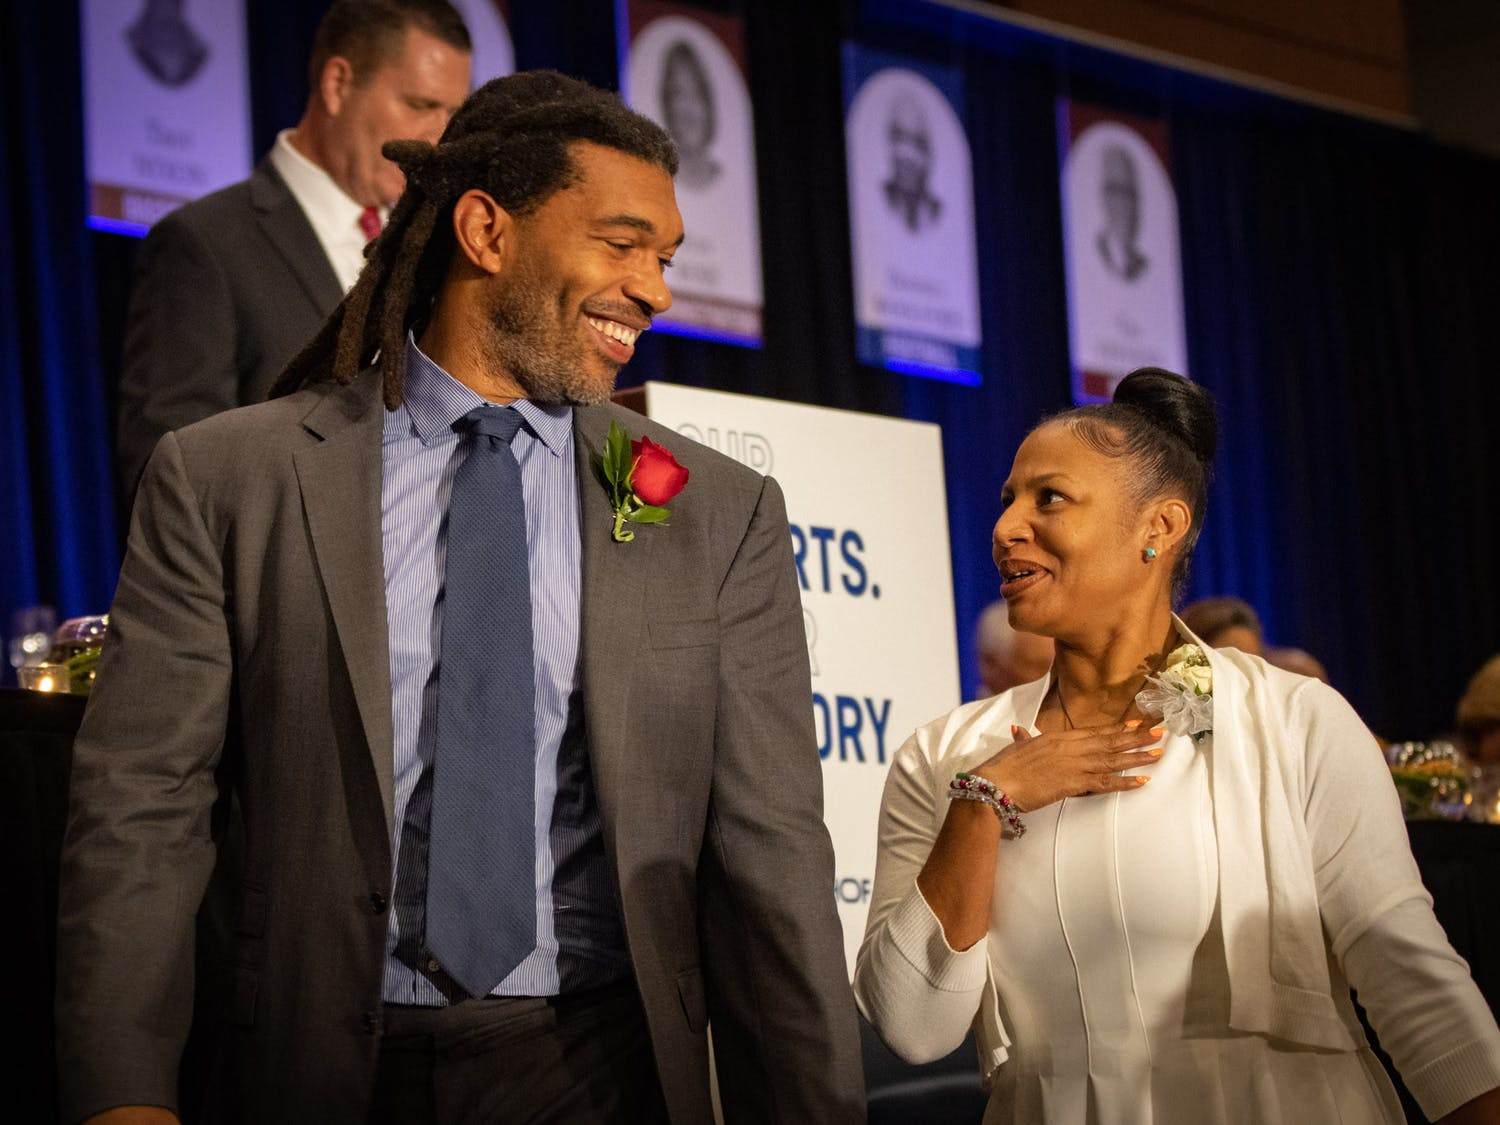 Inductee Julius Peppers shares a smile with his sister as he is introduced at the North Carolina Sports Hall of Fame induction ceremony Friday.